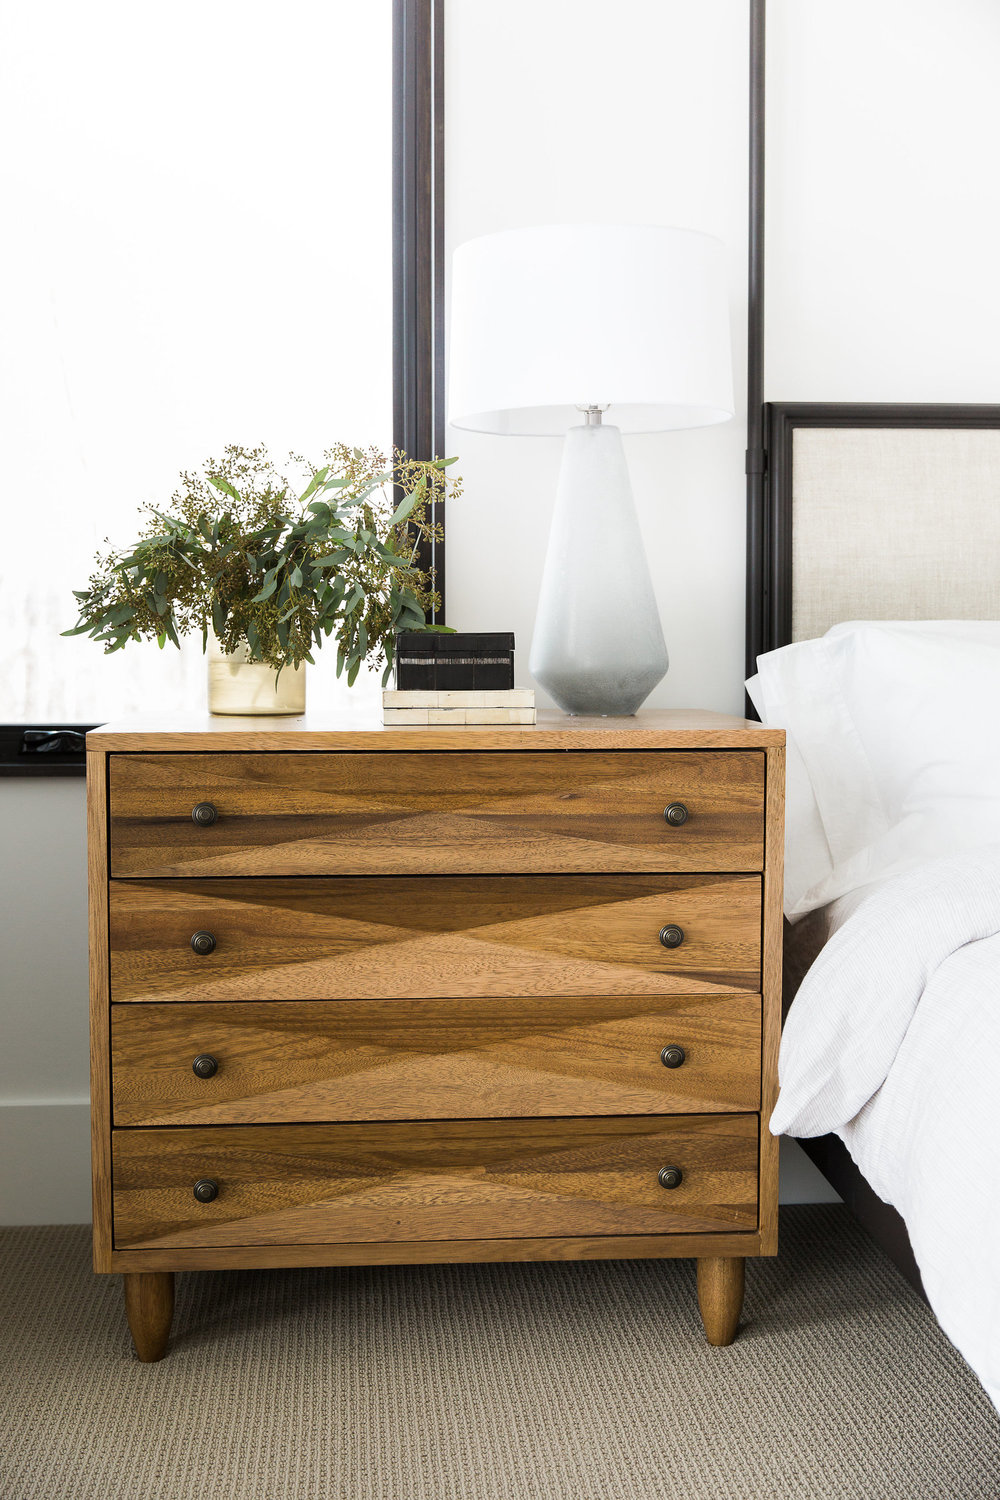 Modern+Nightstands+||+Studio+McGee.jpg